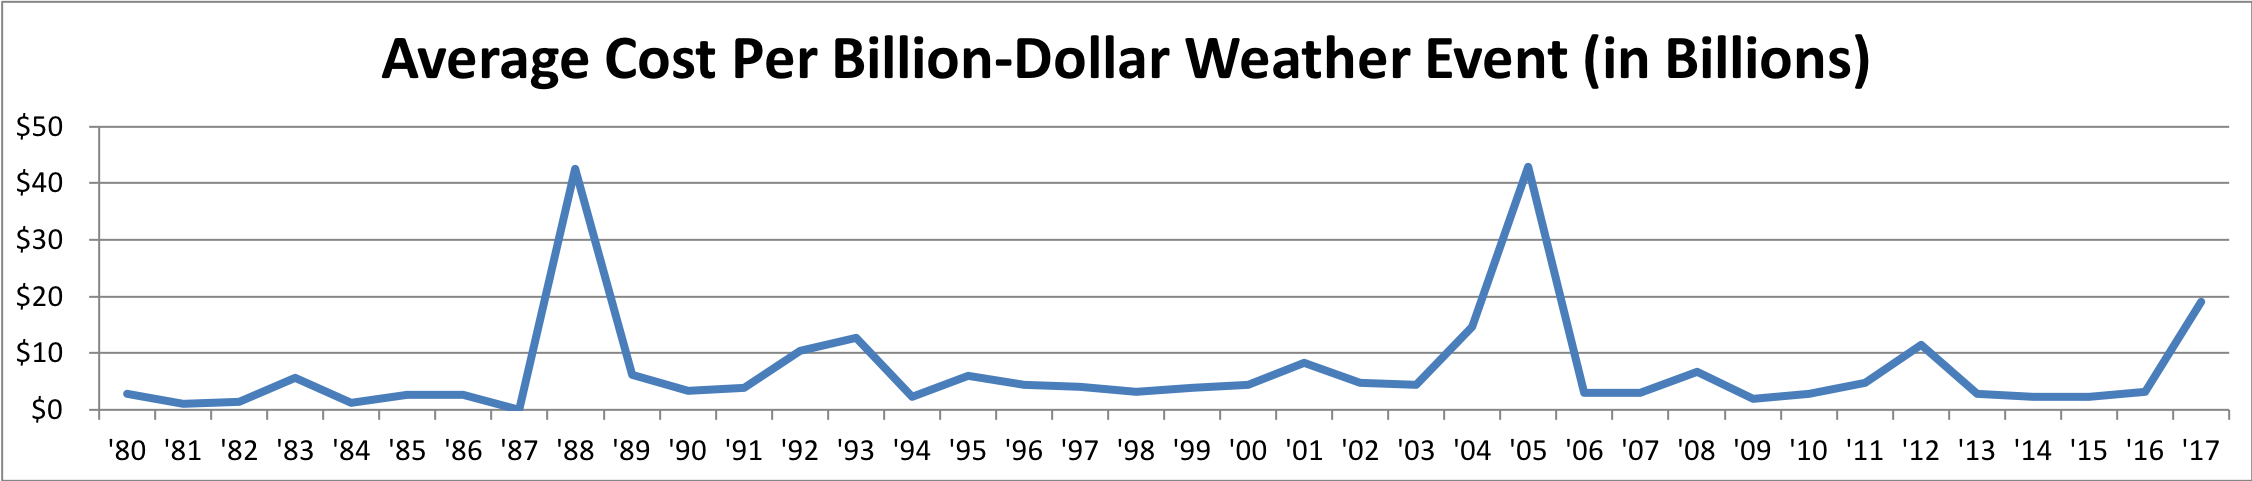 Chart Showing the Average Cost Per Billion-Dollar Weather And Climate Event